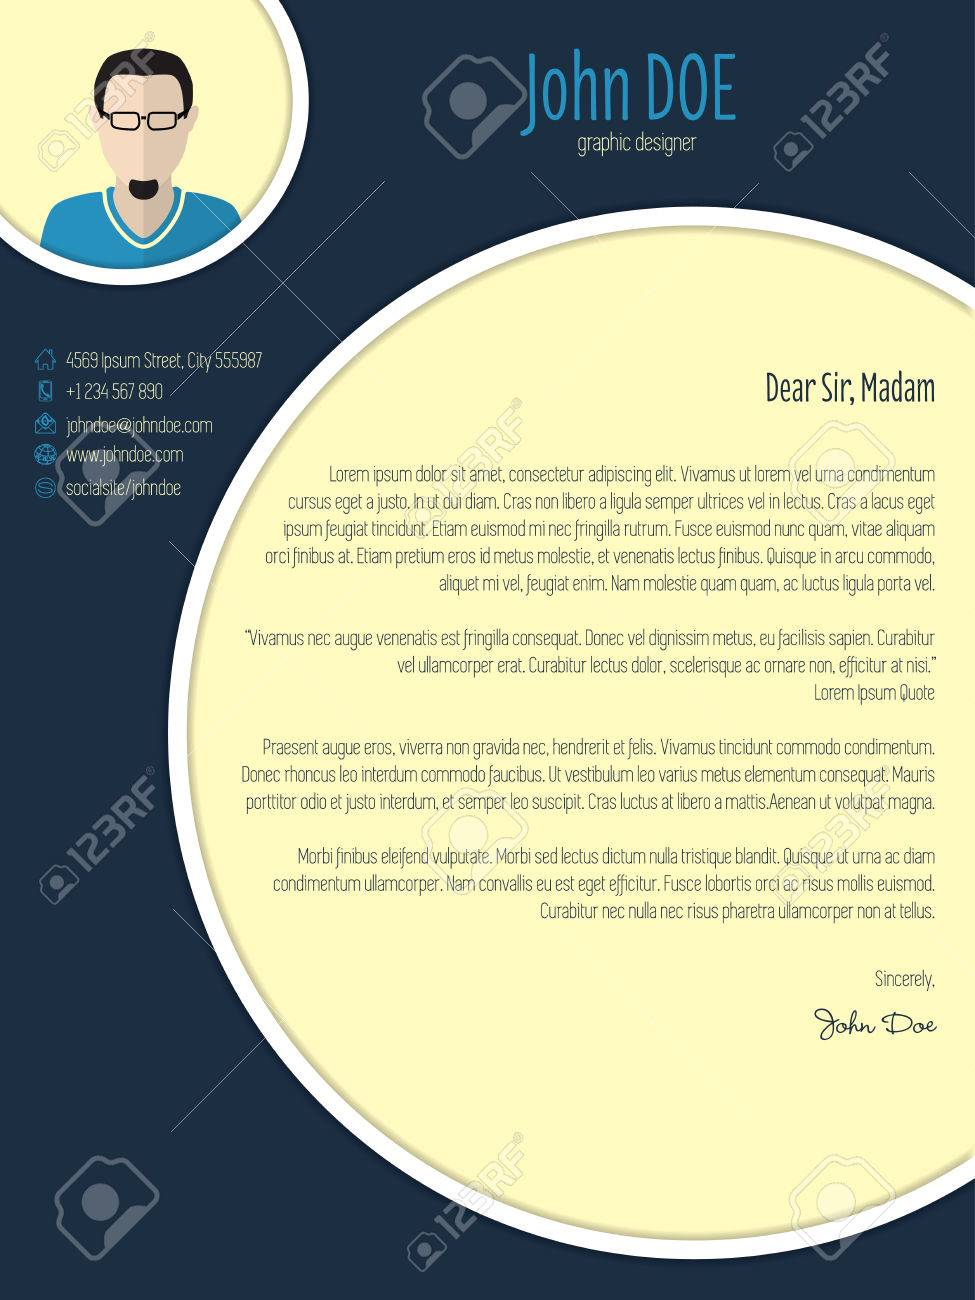 Cool New Modern Cover Letter Template With Circle Elements Royalty